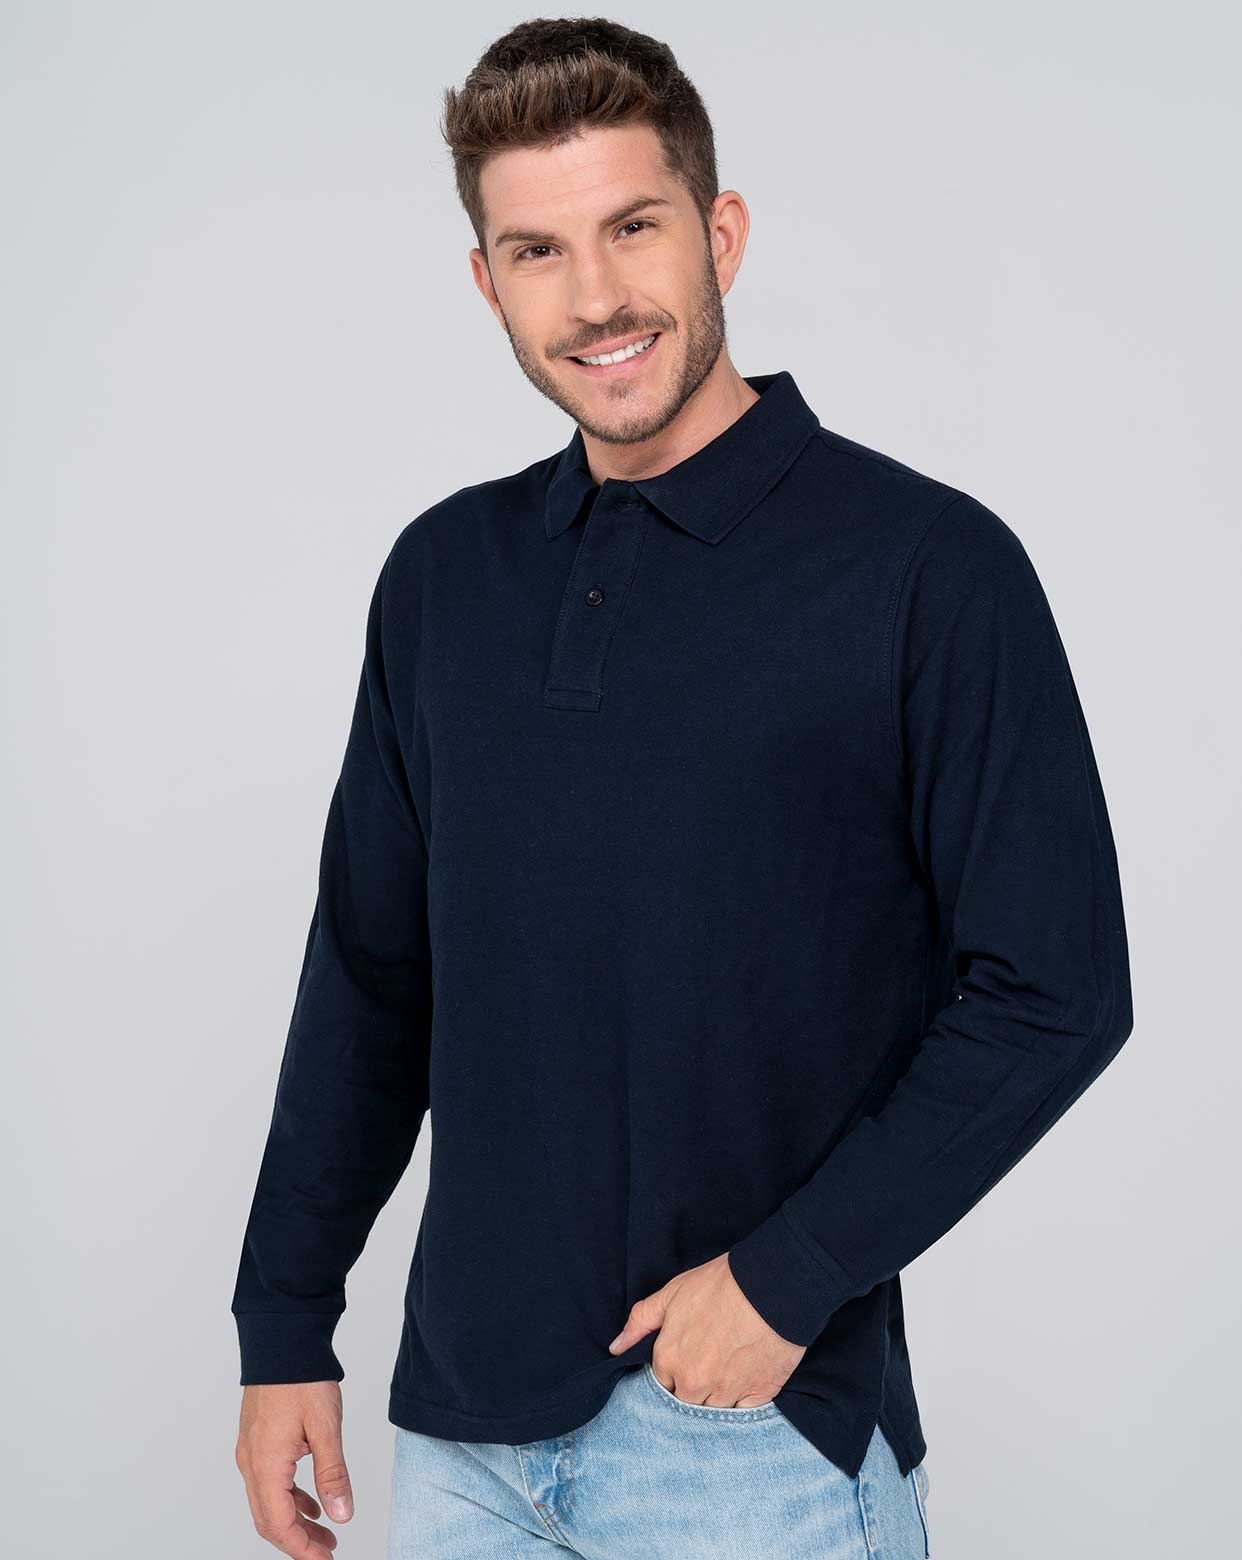 Man Regular LS Polo  - PORA210LS